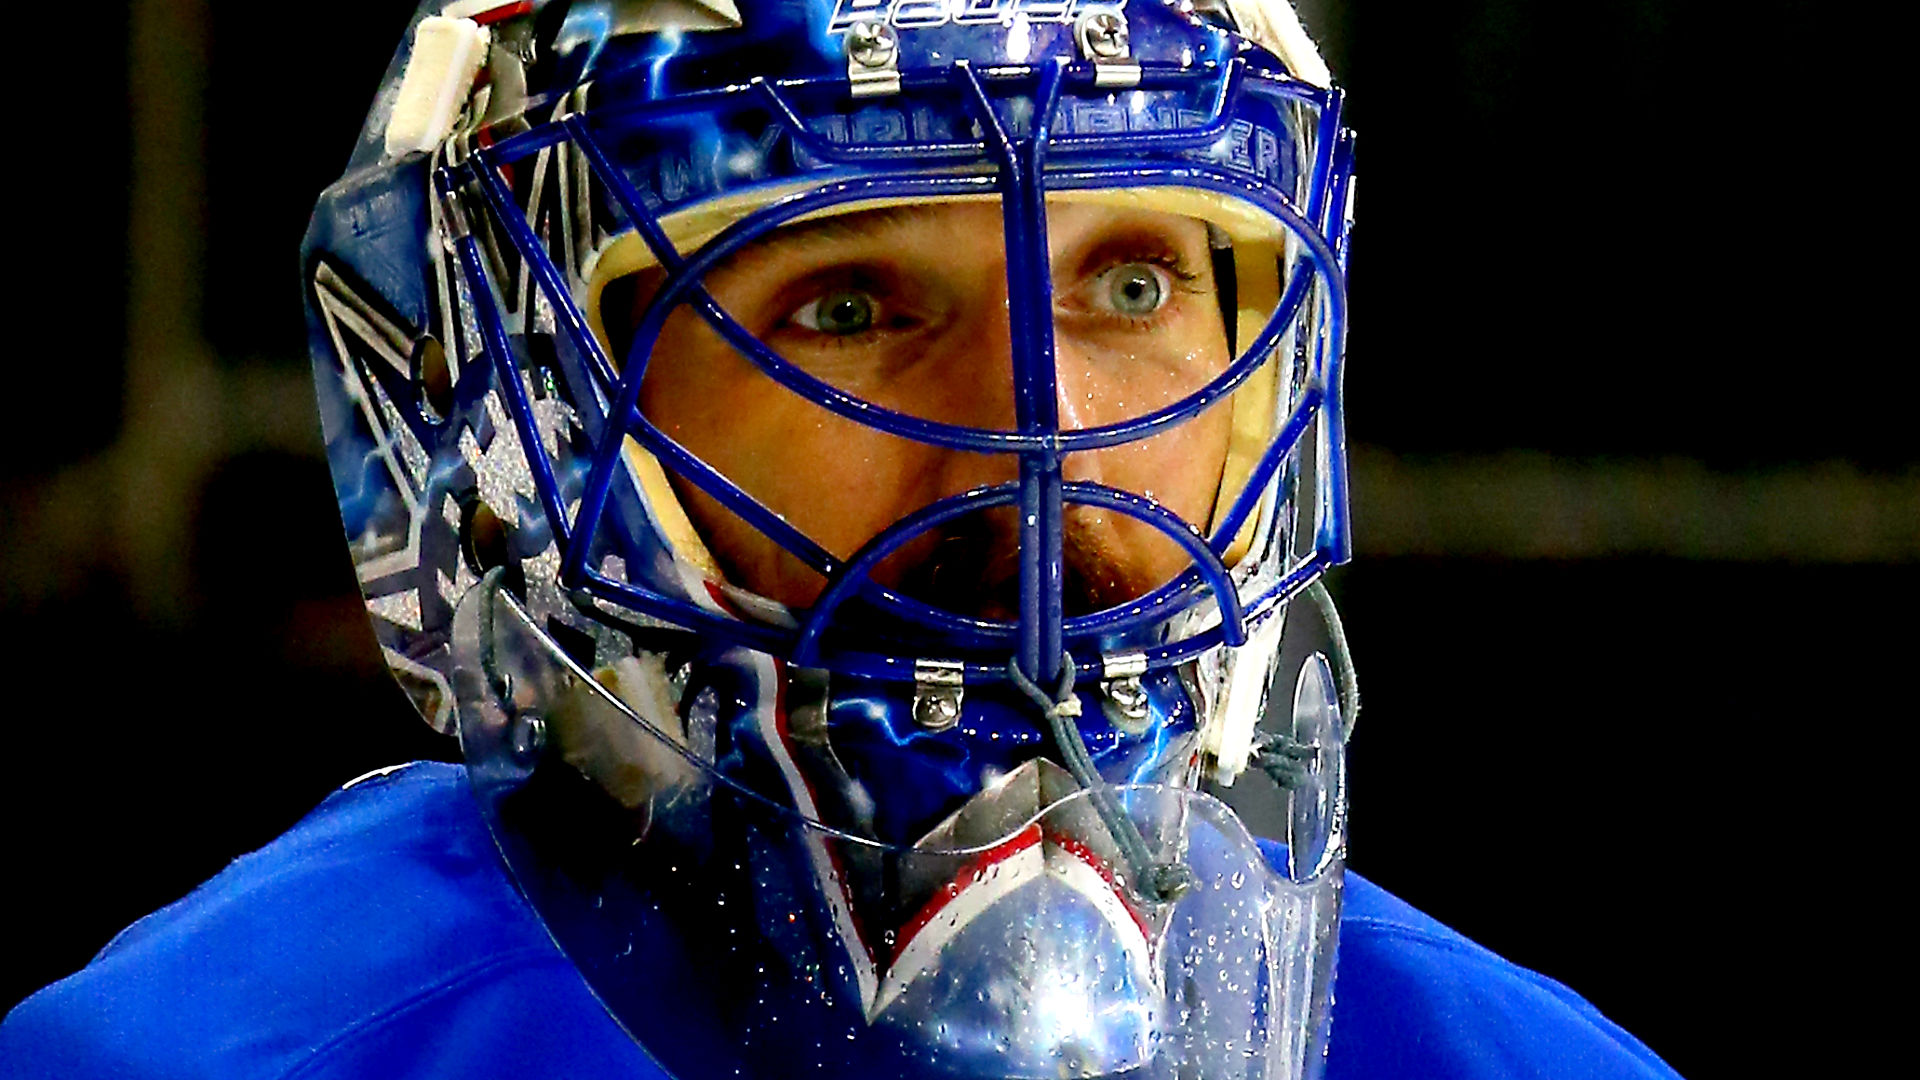 Lightning-Rangers Game 7: Henrik Lundqvist, history and Bolts from the blue